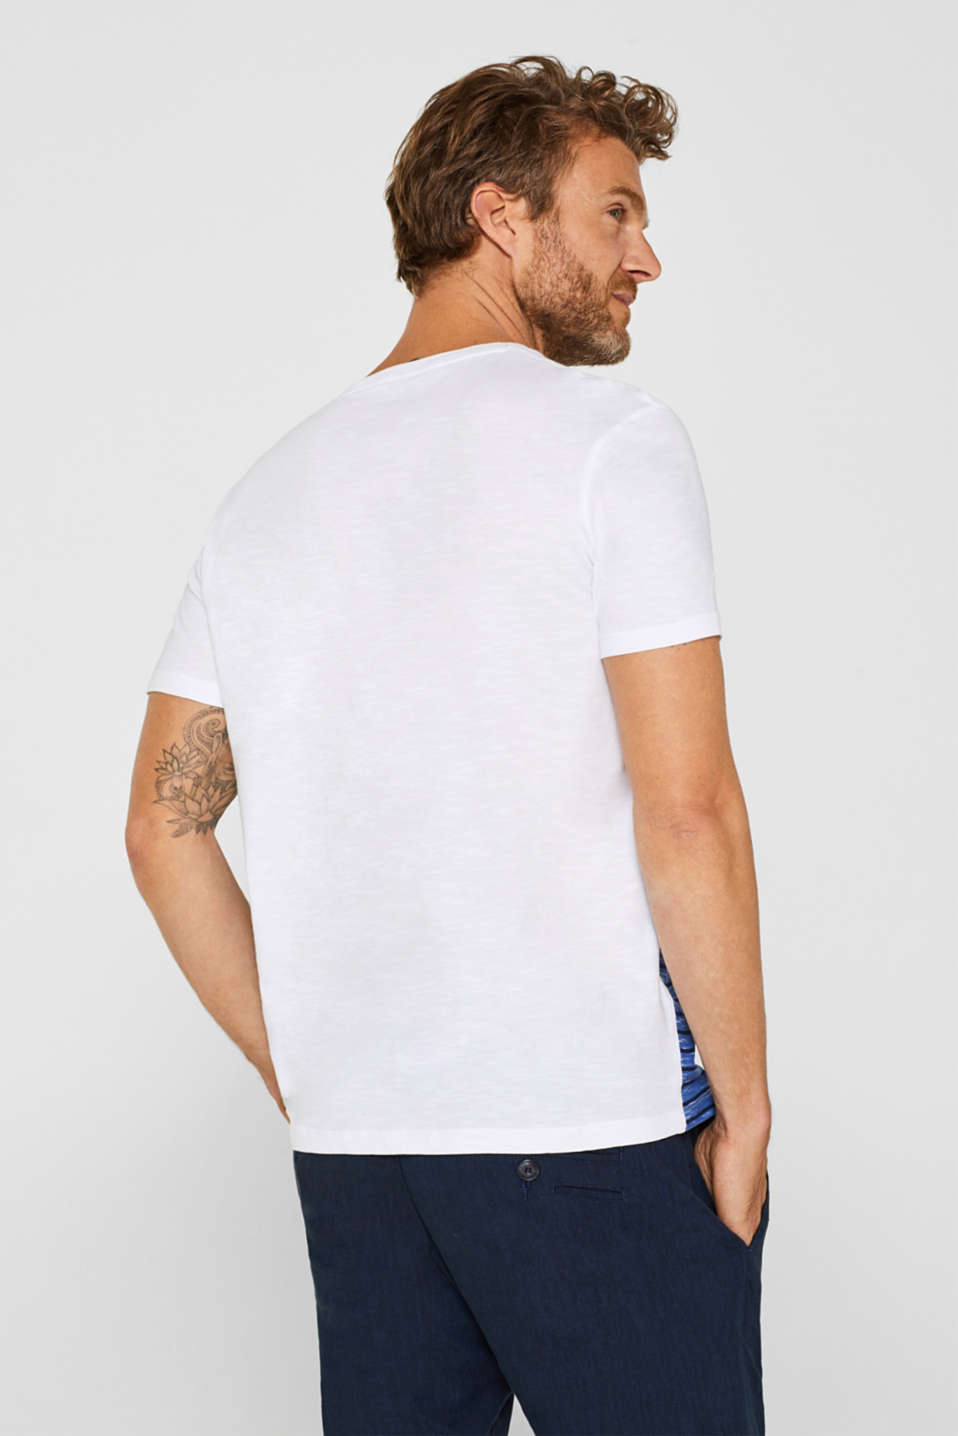 Jersey T-shirt with stripes, 100% cotton, NAVY, detail image number 4